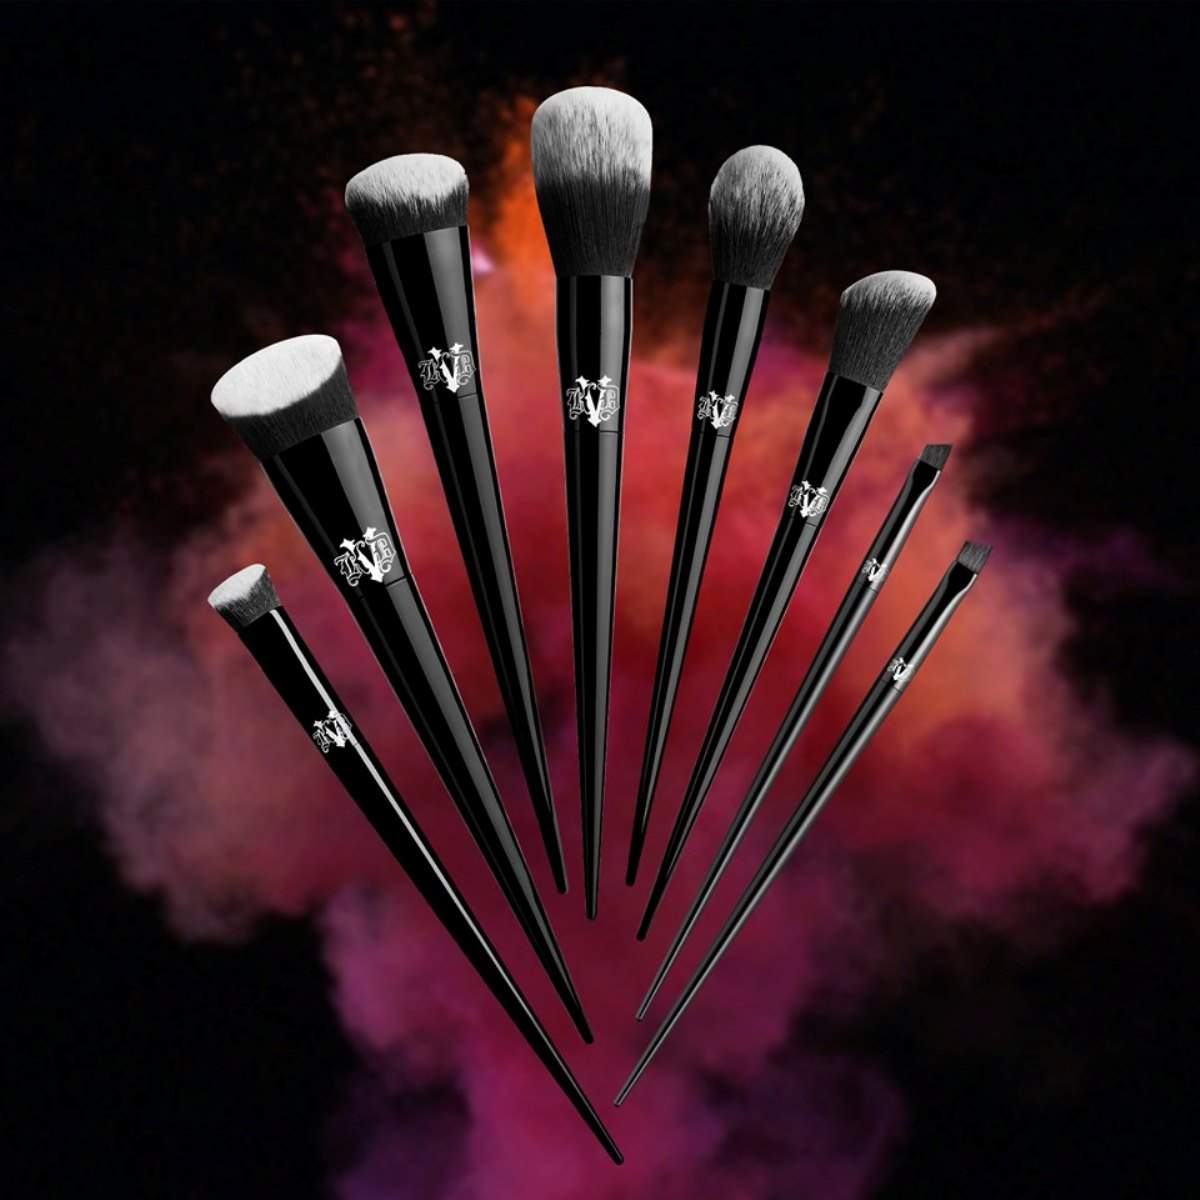 Vegan Makeup Brush Brands For A Flawlessly Fur Free Face Image by Kat von D #veganmakeup #makeupbrush